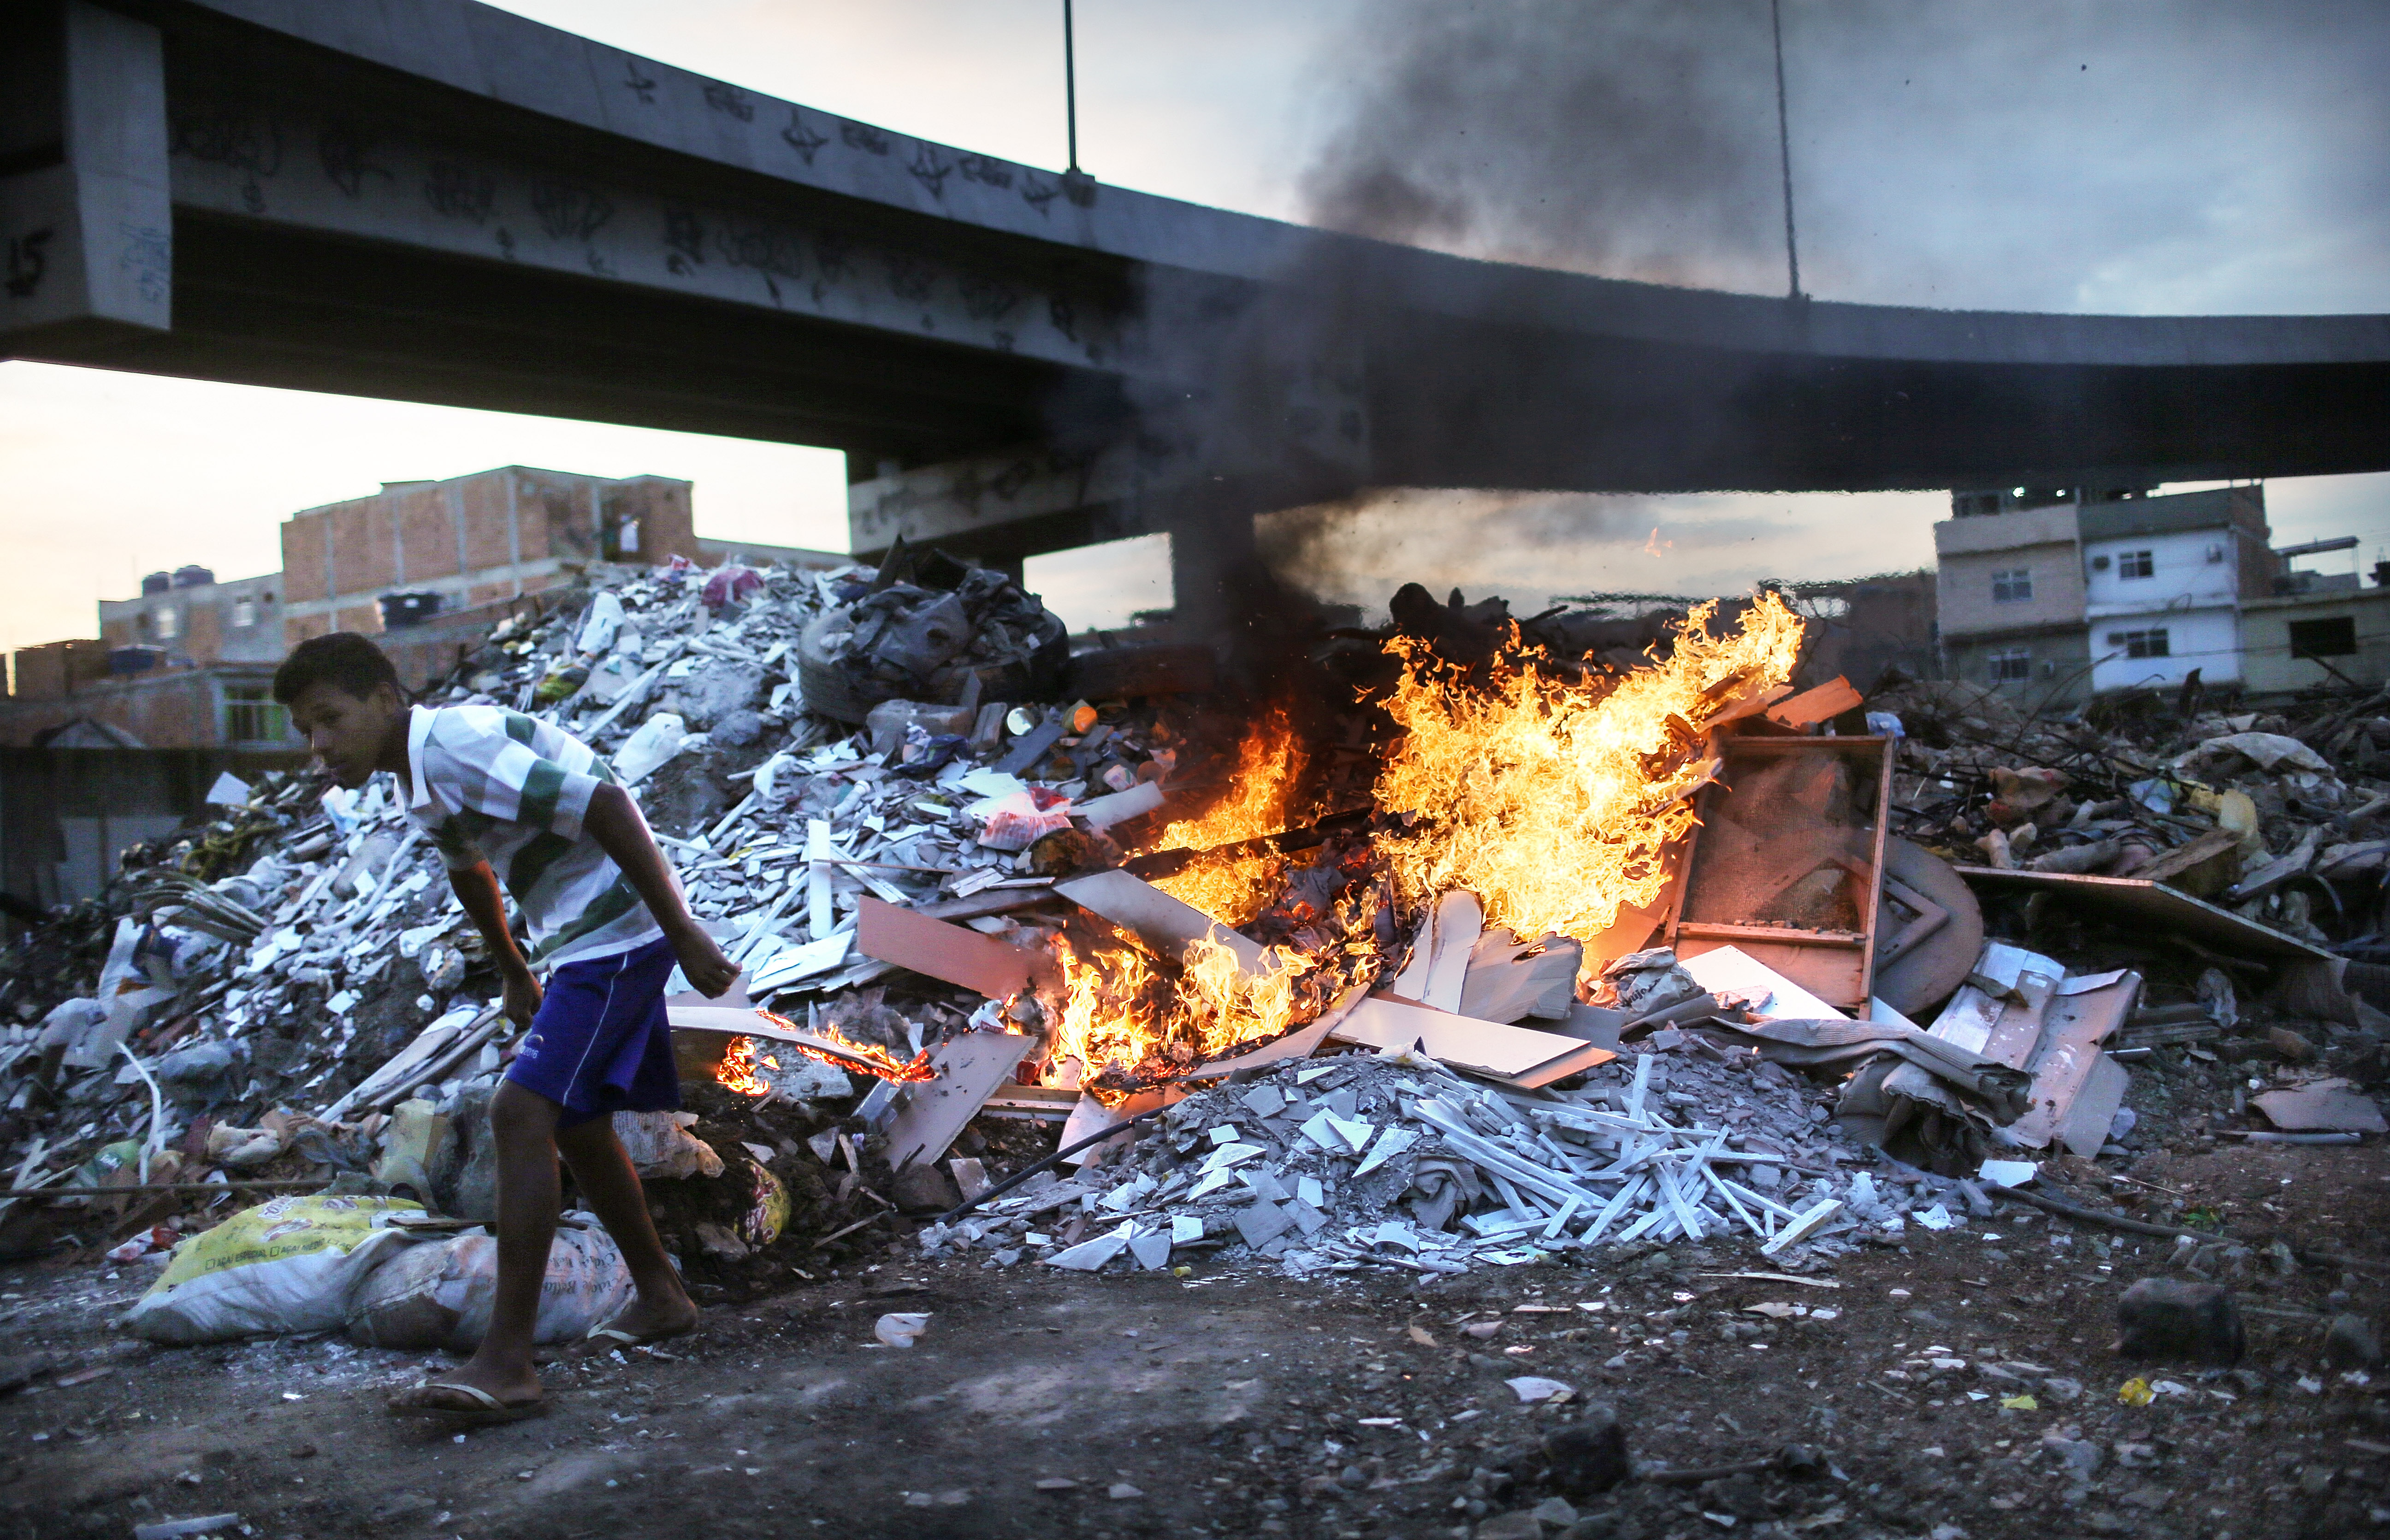 Trash is burned in an area where garbage is dumped near the main highway linking Rio's international airport to the city in the Mare favela community complex in Rio de Janeiro on July 18, 2016.